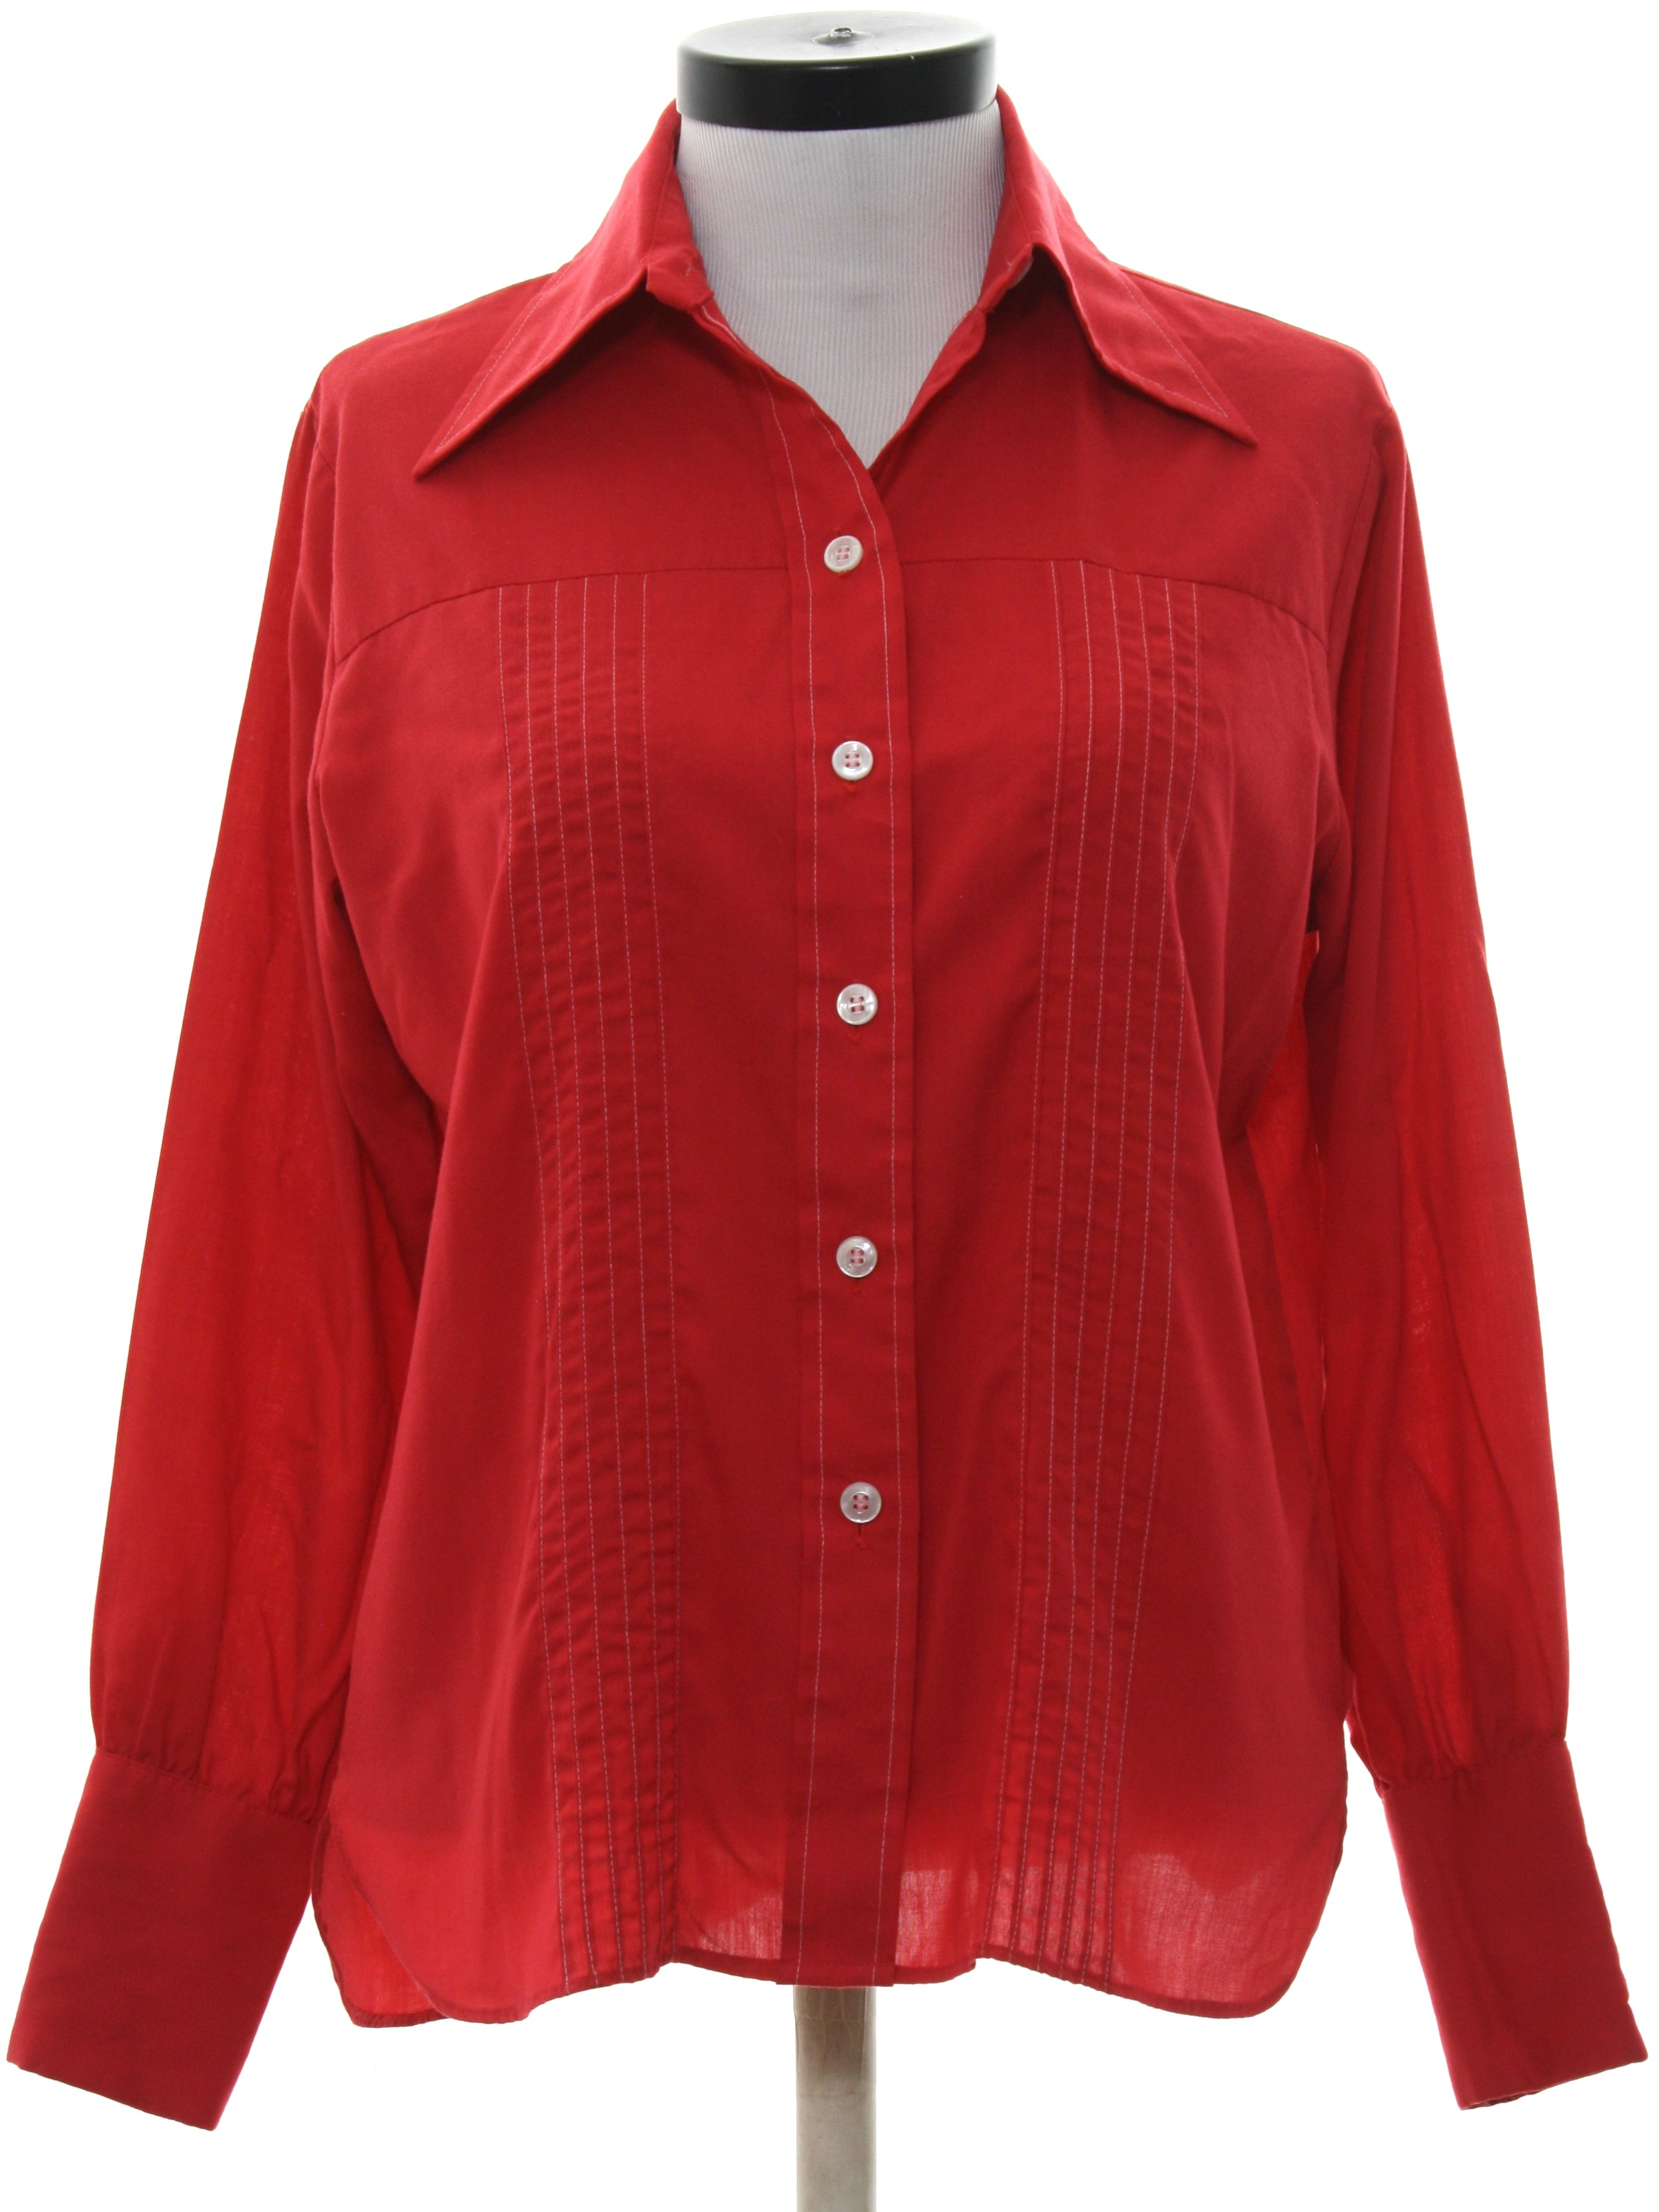 70 39 s vintage shirt 70s lady wrangler womens red for Solid color button up shirts